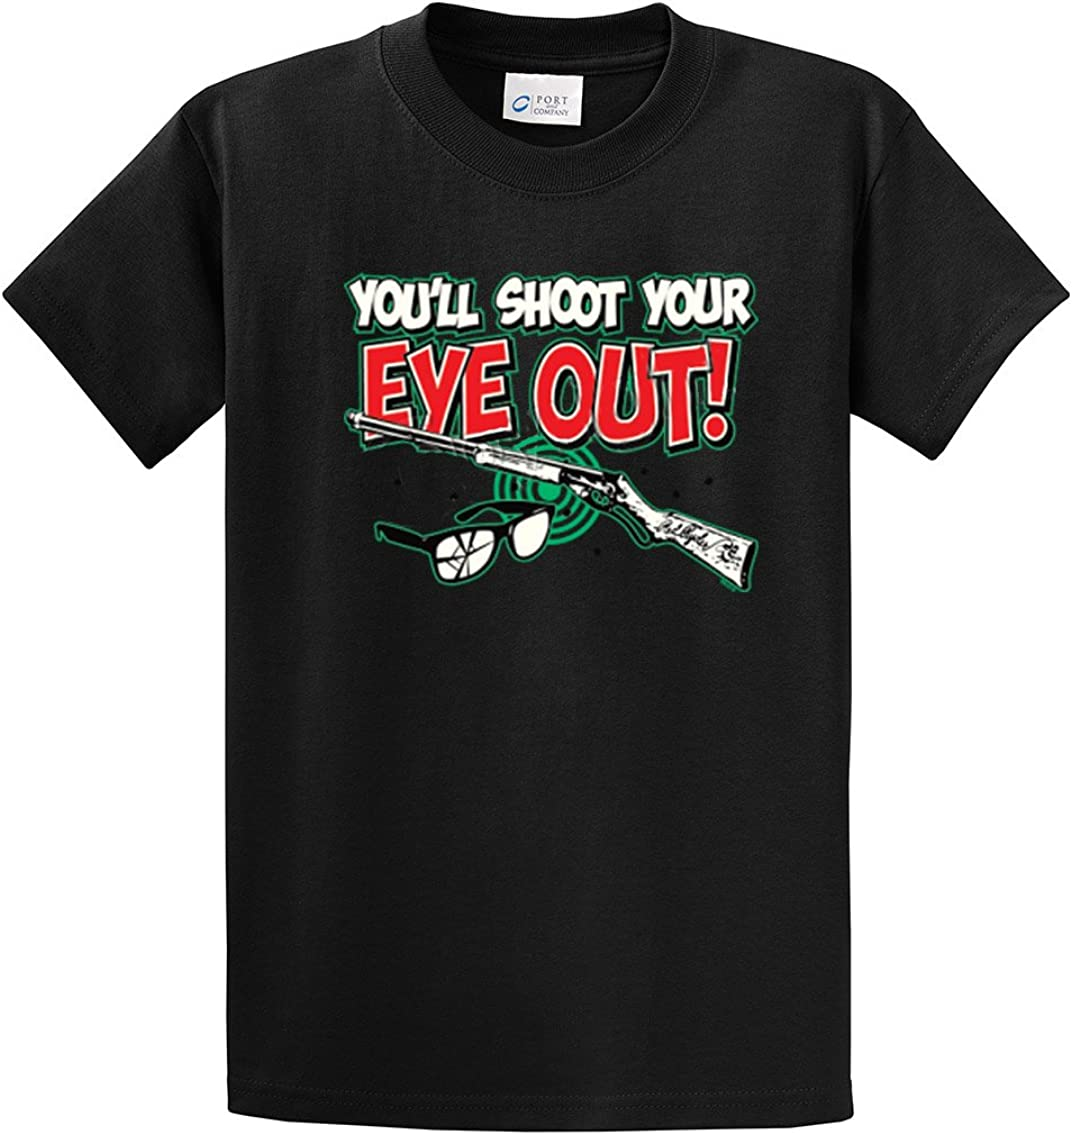 Zoko Apparel Im Out Baby Ugly Christmas T-Shirt